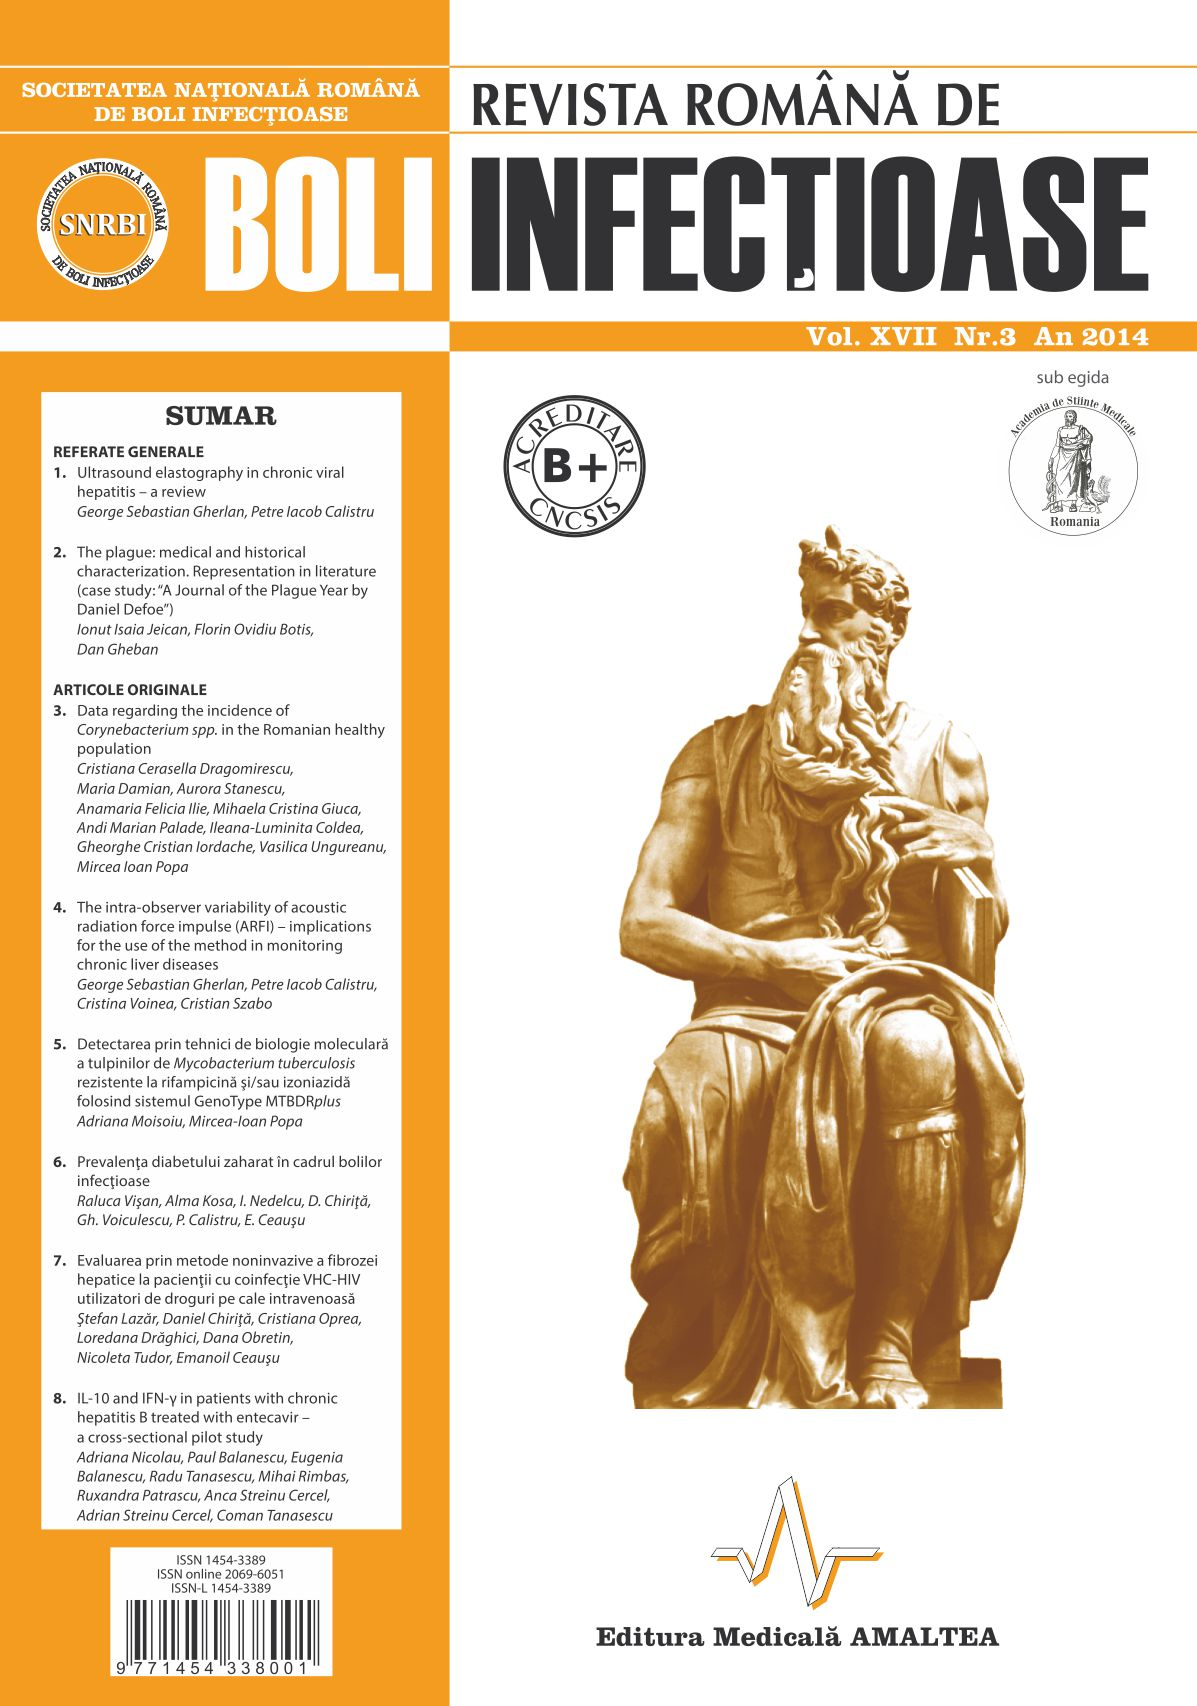 Revista Romana de Boli Infectioase | Vol. XVII, No. 3, 2014